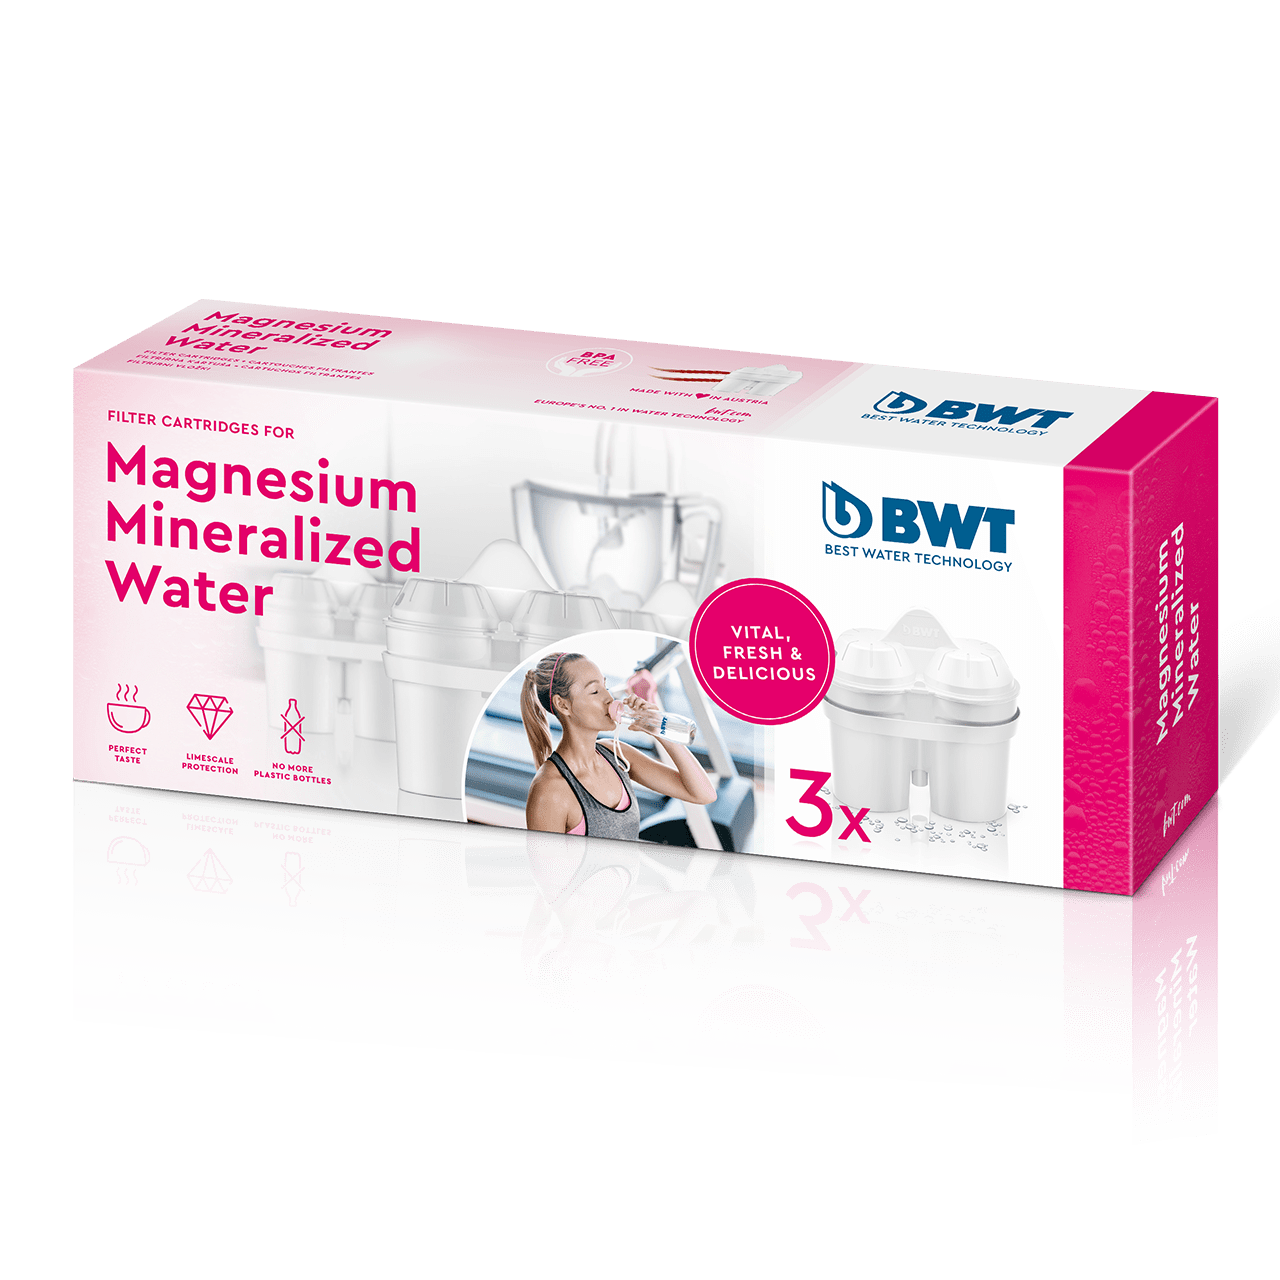 Magnesium Mineralized Water